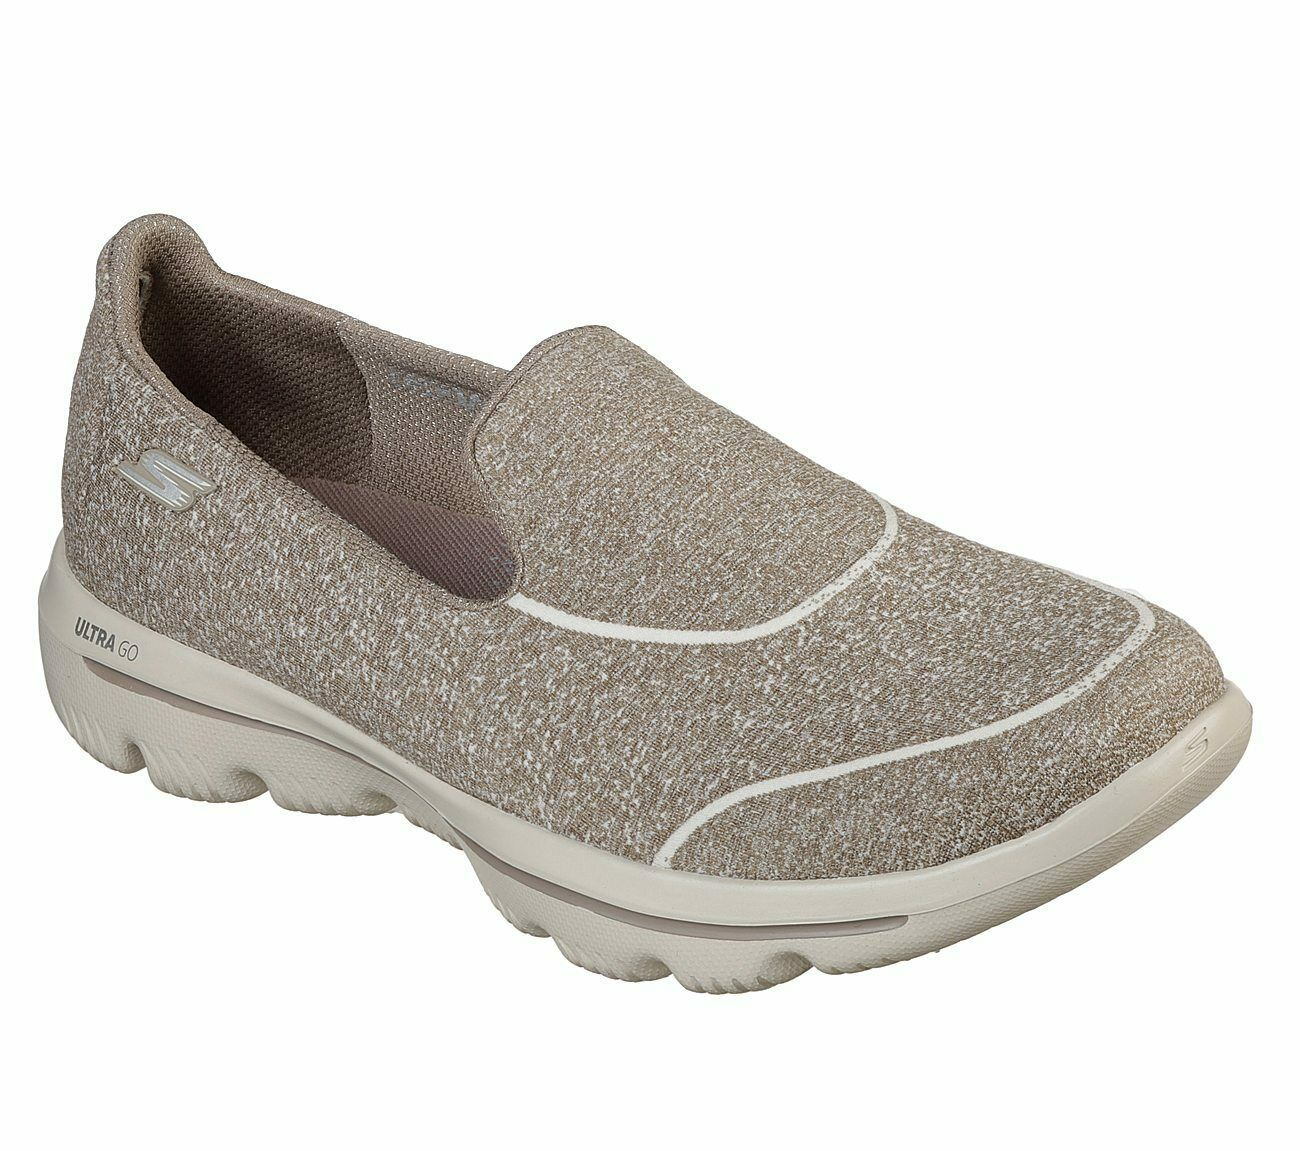 Skechers Shoes Taupe Go Walk Women Super Suck Soft Casual Slip On Comfort 15732